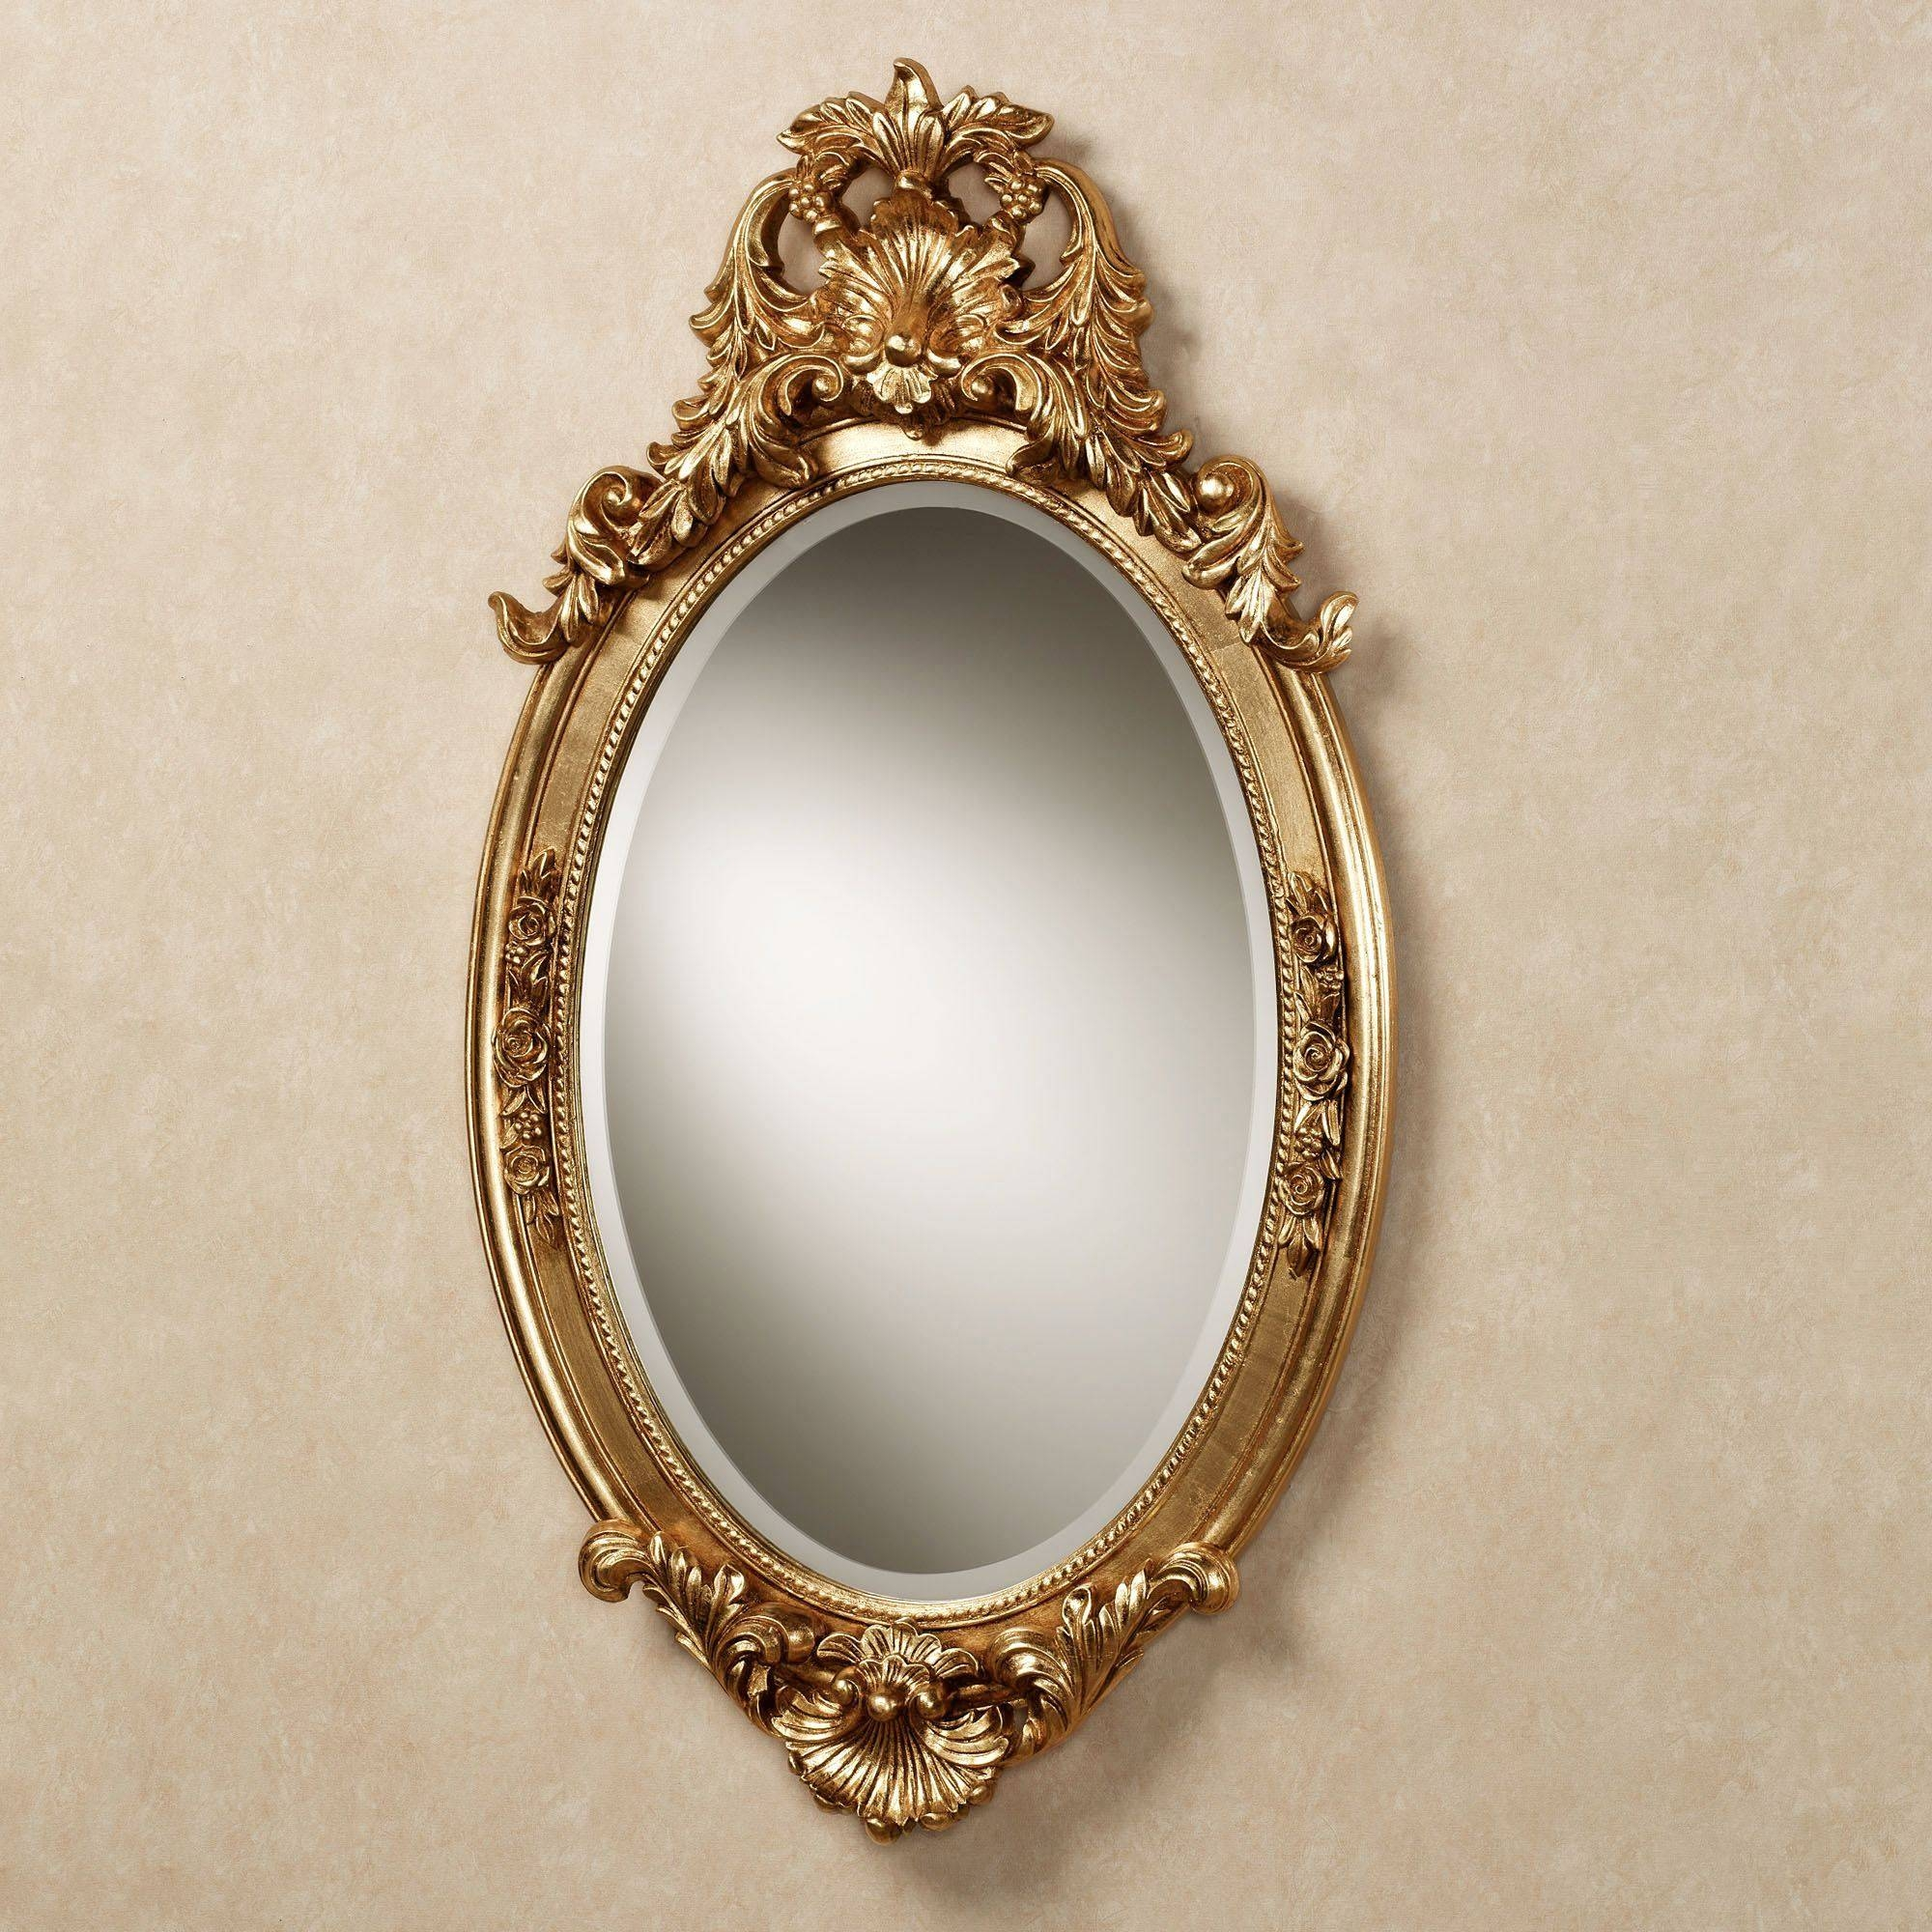 Hallandale Acanthus Leaf Oval Wall Mirror inside Oval Wall Mirrors (Image 10 of 25)